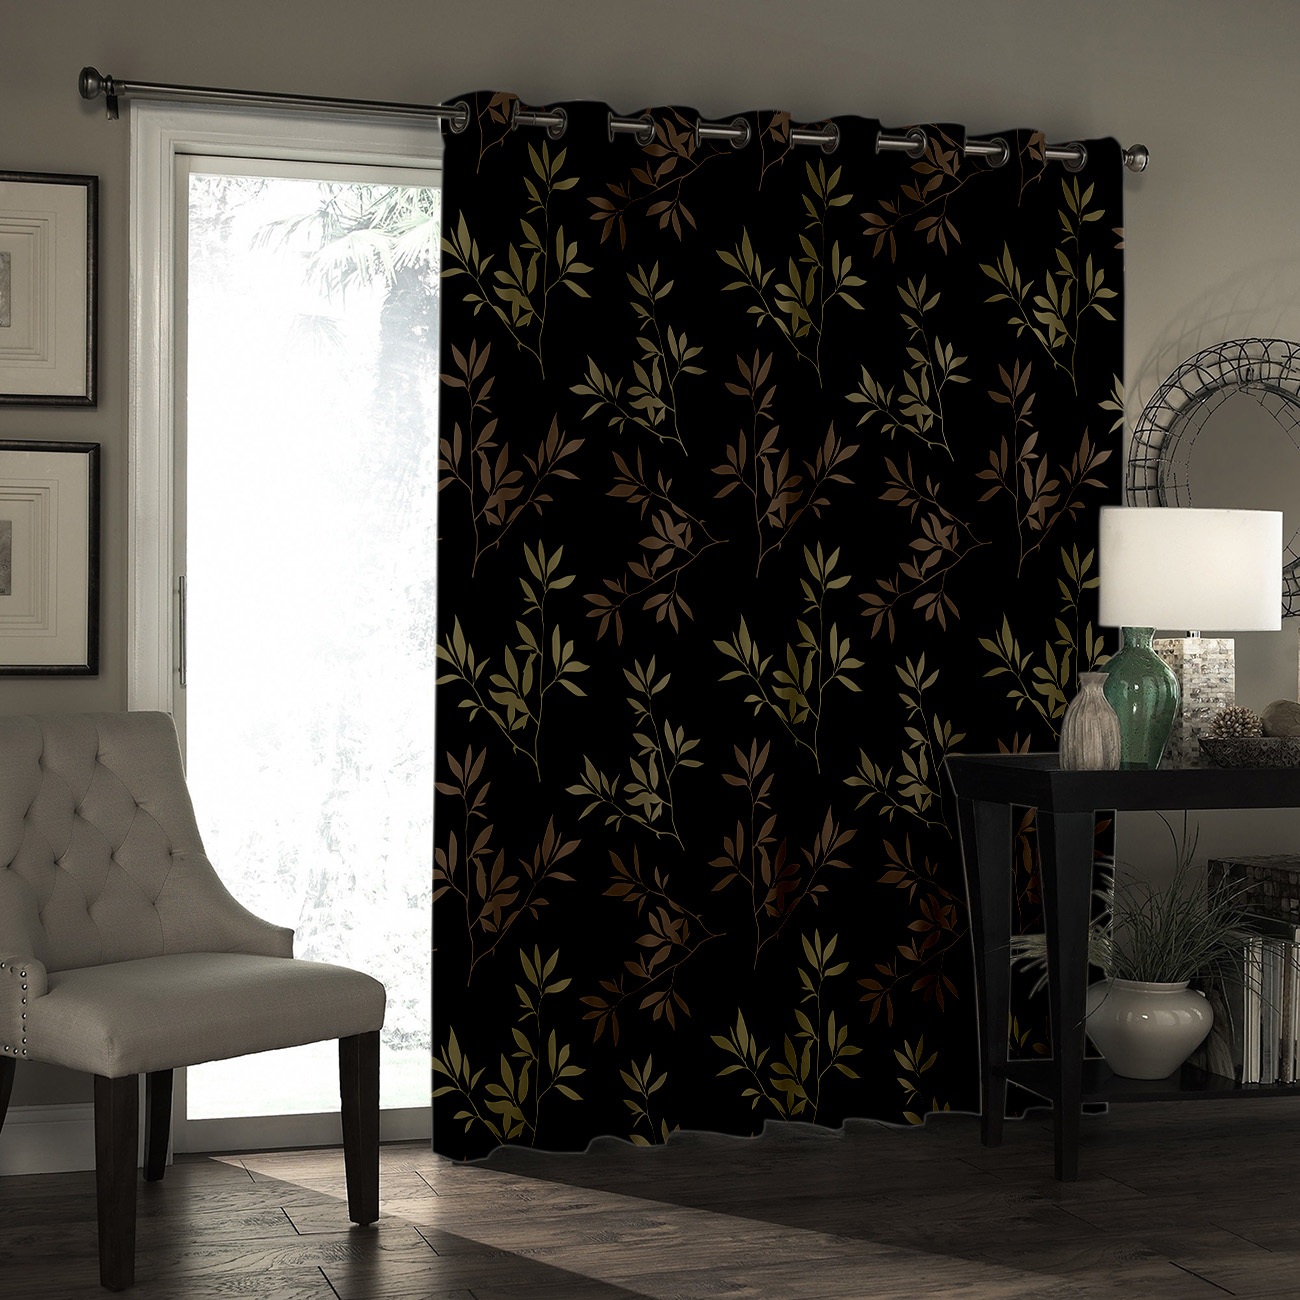 Autumn Style Of Plants Living Room Blackout Drapes Indoor Fabric Decor Curtain Panels With Grommets Window Treatment Sets Window